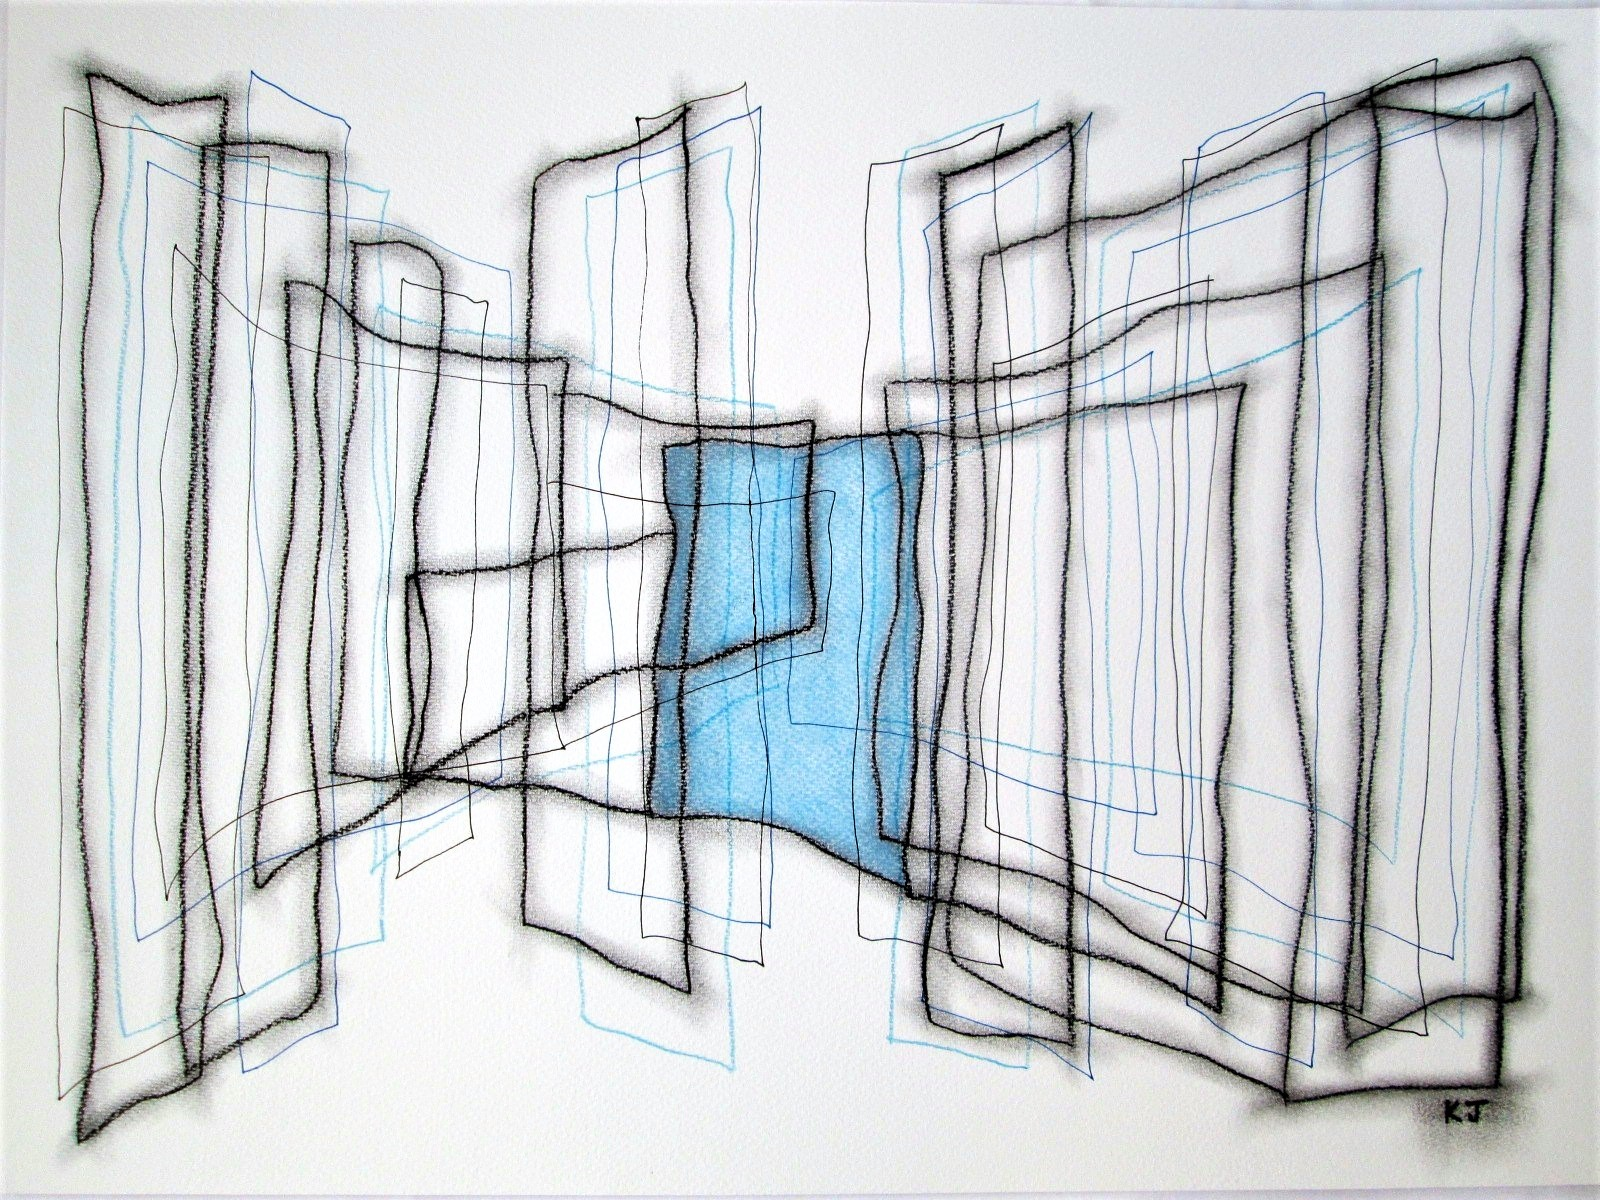 Blue Square artwork by Kevin Jones - art listed for sale on Artplode